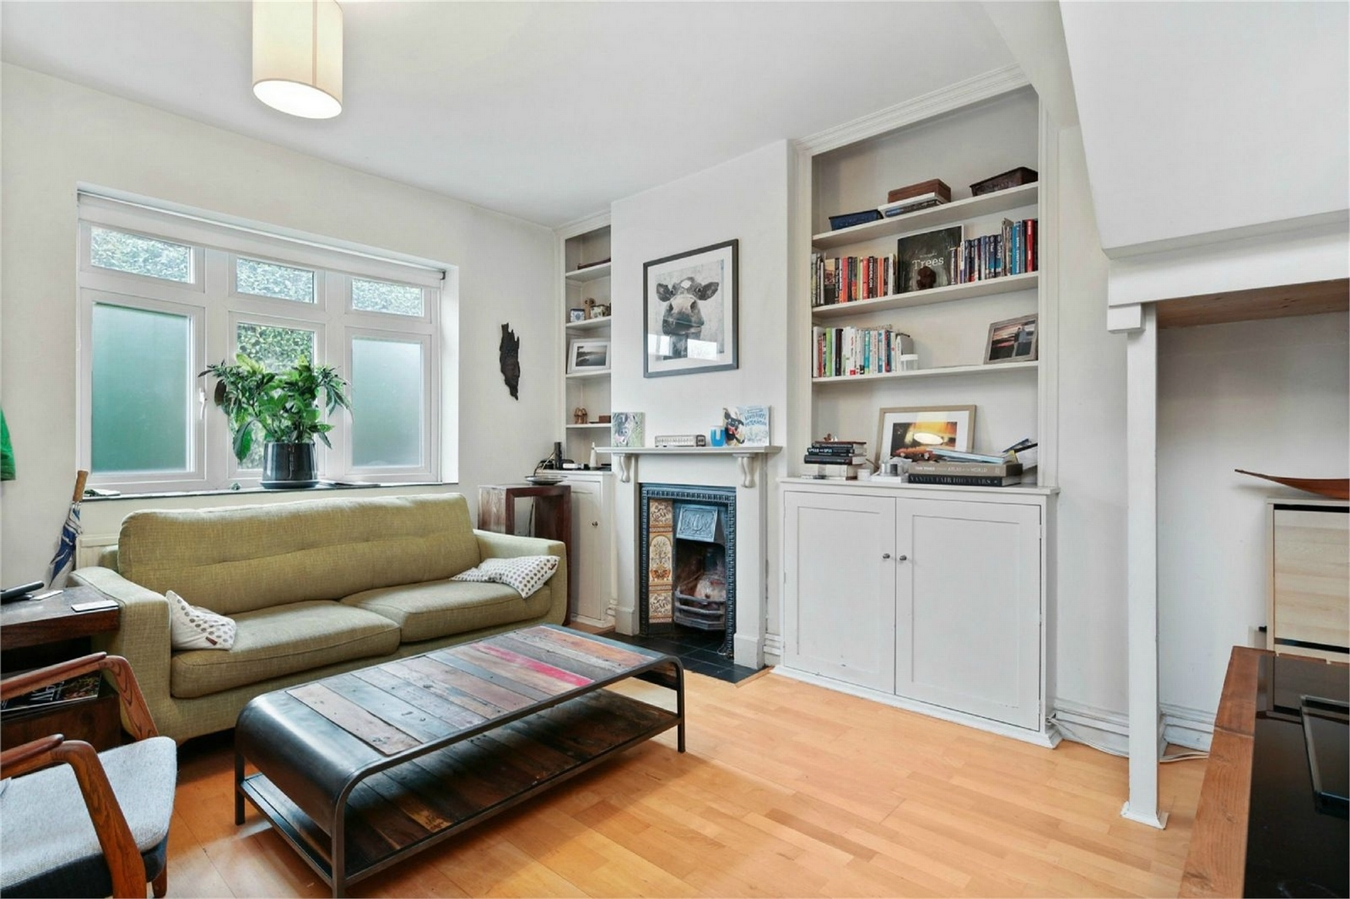 Images for Rothschild Road,Chiswick EAID:b14af4f96b772baf94477b55c6aee9ec BID:1